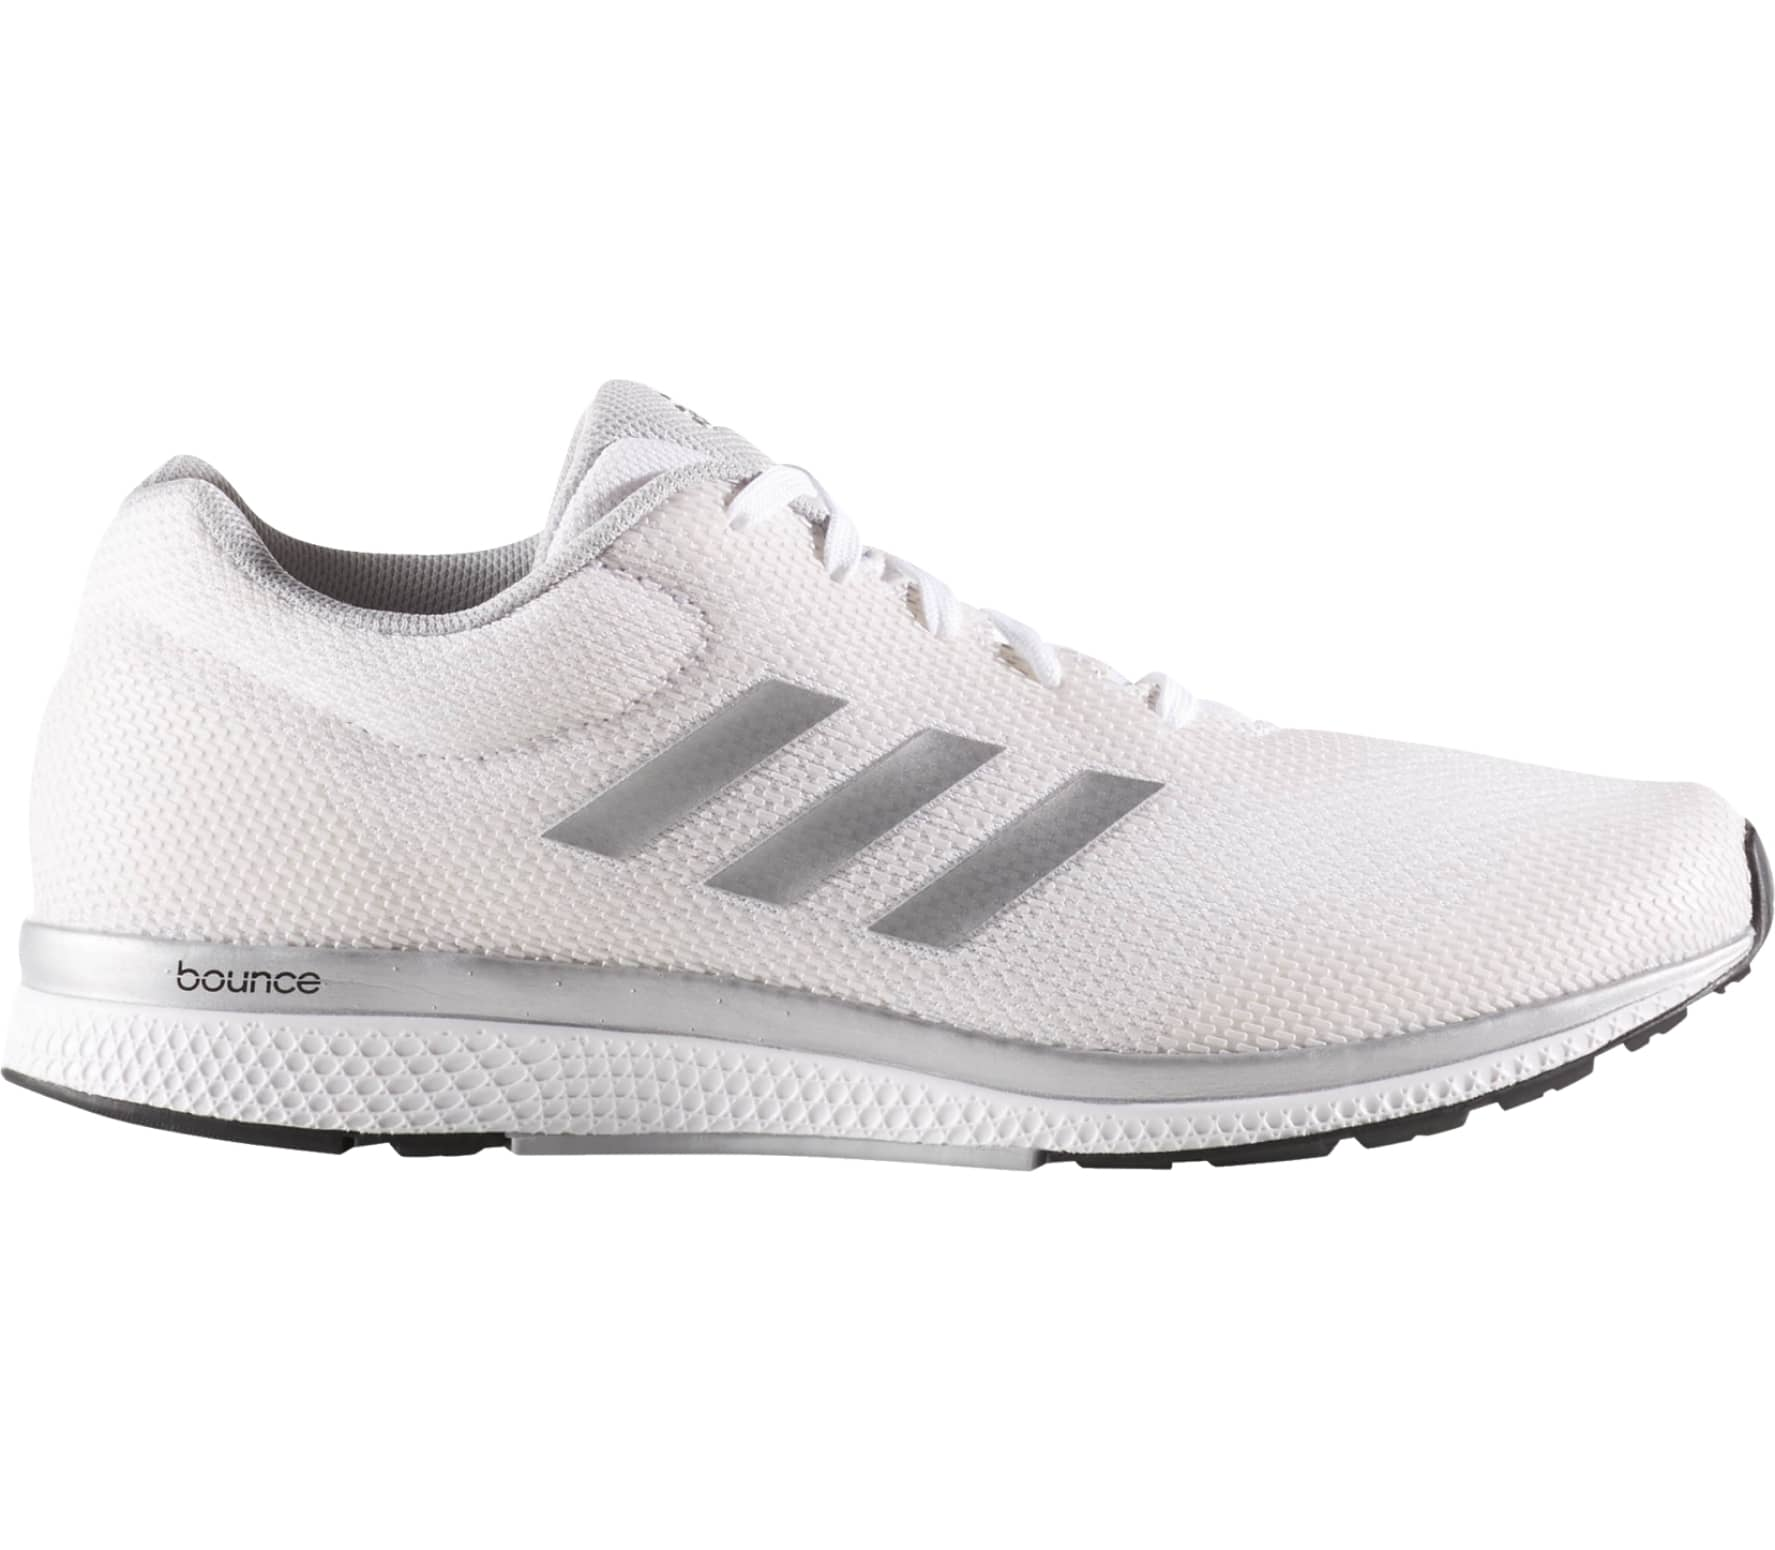 los angeles 0f1a6 37972 Adidas - Mana Bounce 2 Aramis women's running shoes (white/silver)